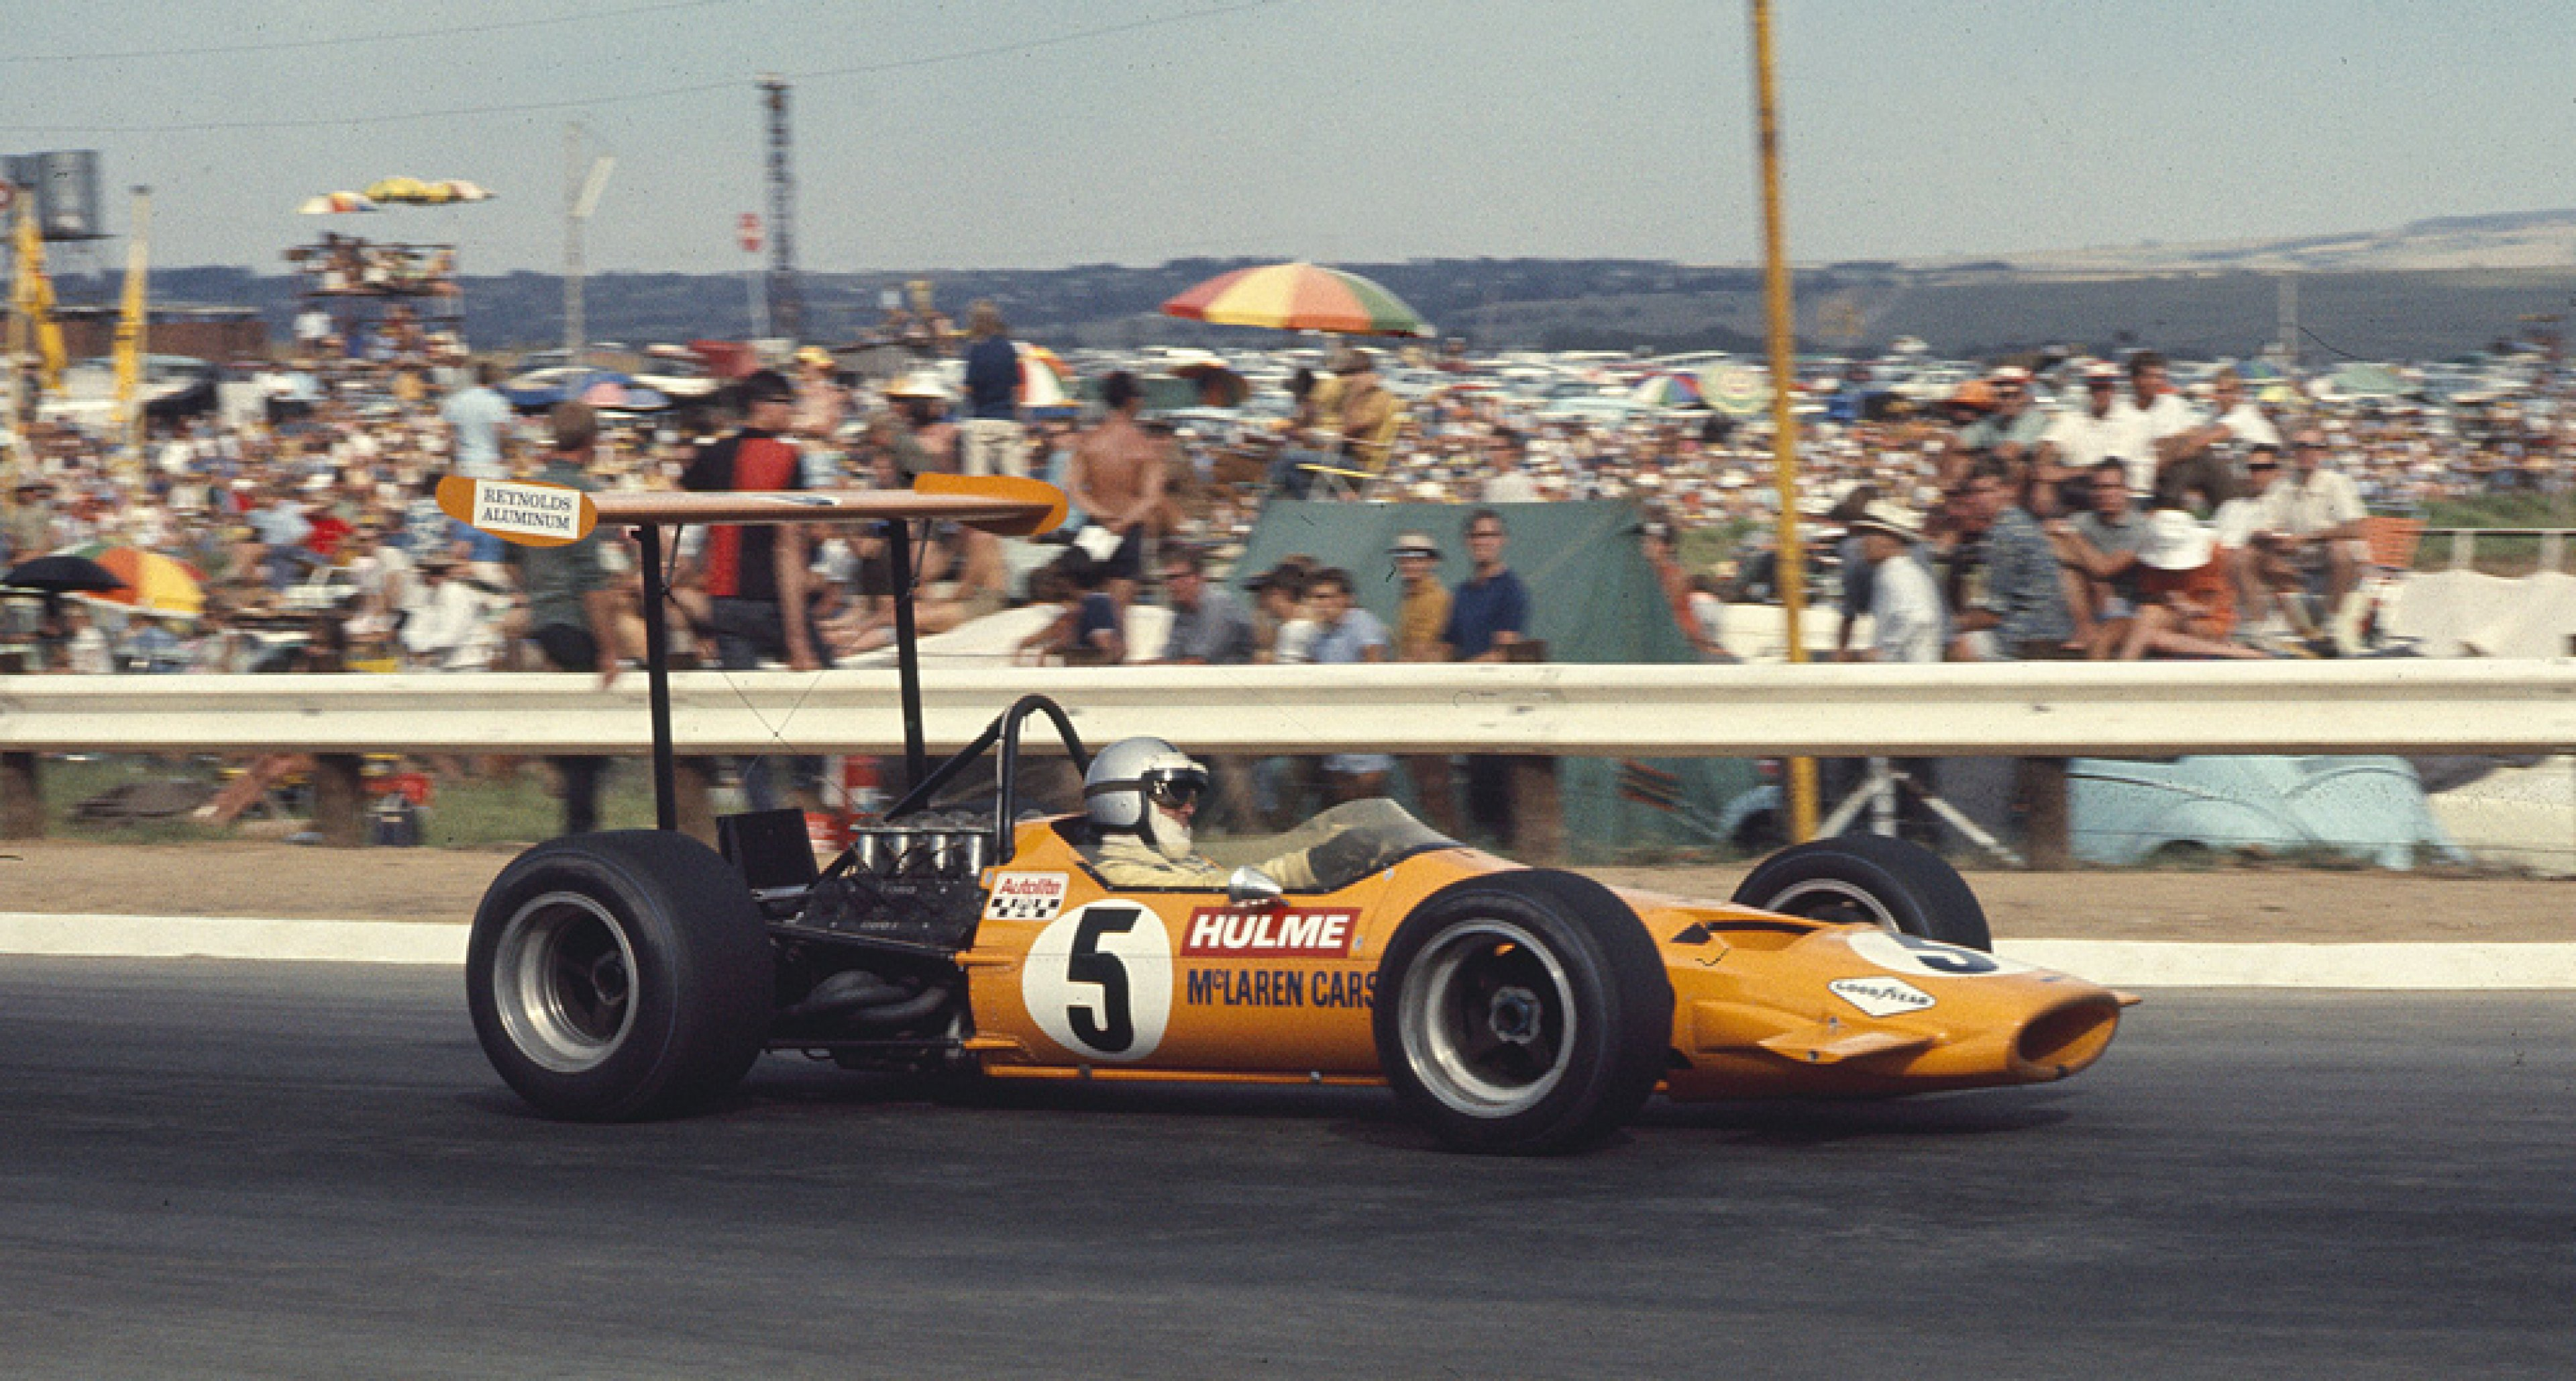 1969 South African Grand Prix at Kyalami. Denny Hulme in a McLaren M7A Ford on 3rd position.